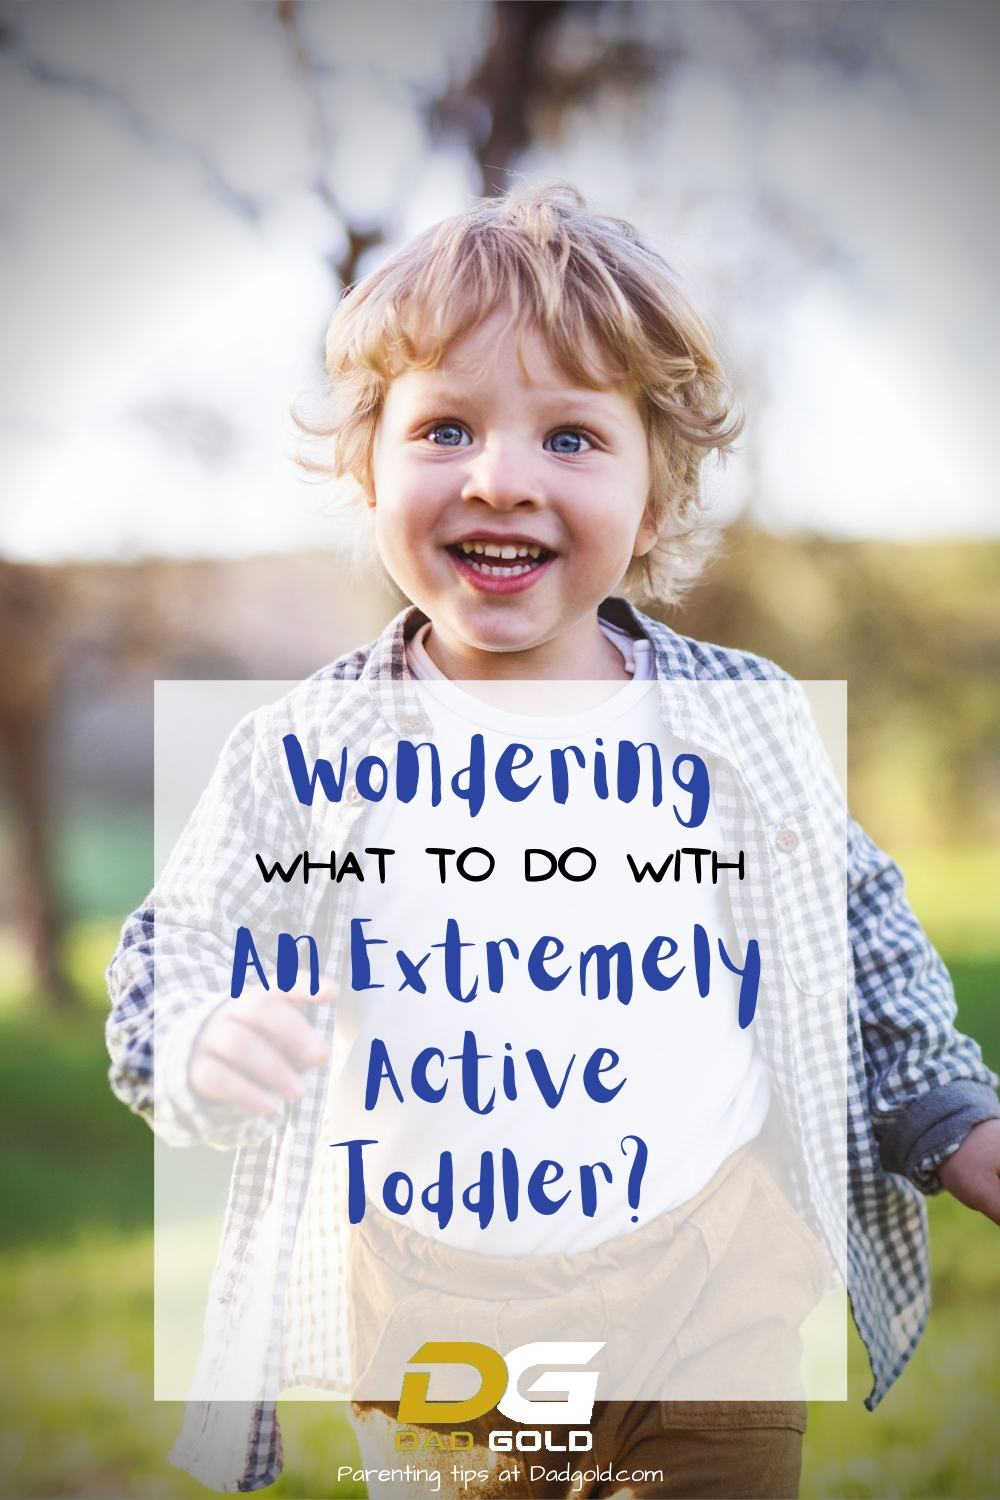 Wondering What To Do With An Extremely Active Toddler